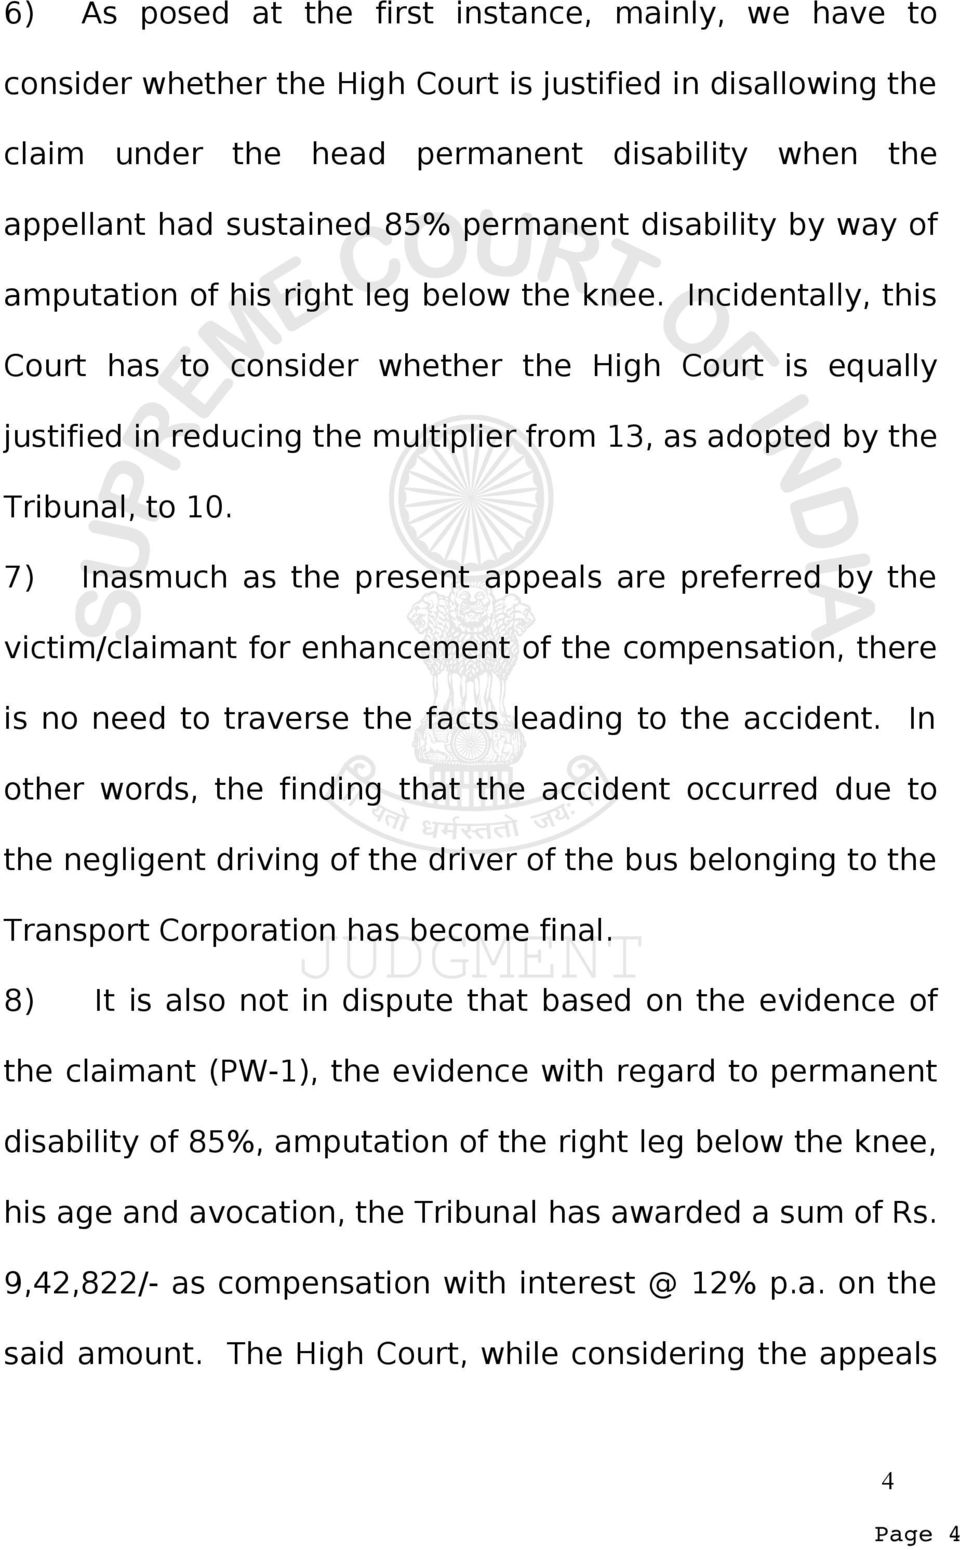 Incidentally, this Court has to consider whether the High Court is equally justified in reducing the multiplier from 13, as adopted by the Tribunal, to 10.